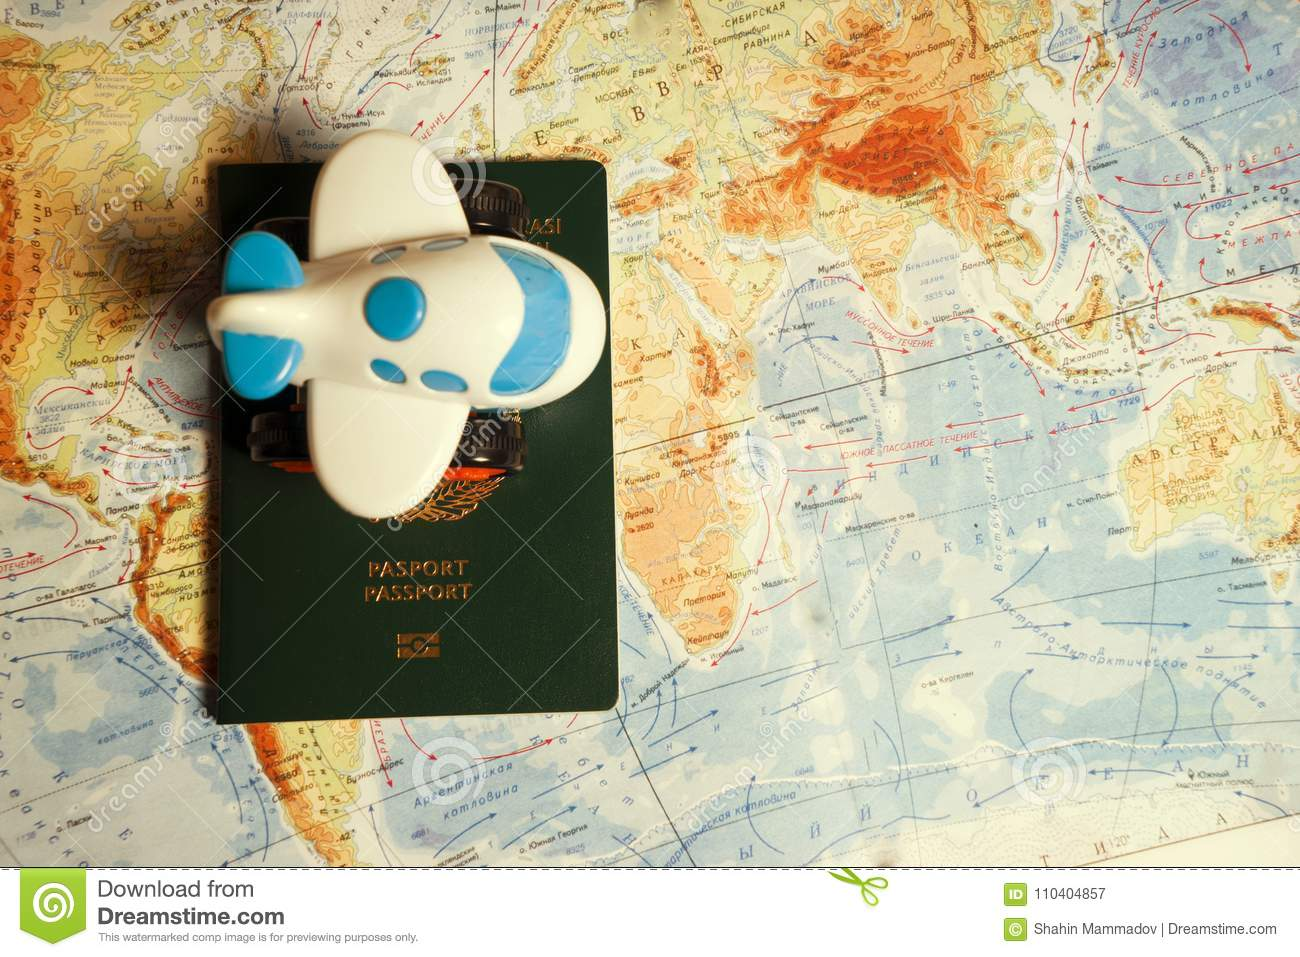 Close up the toy airplane and passport on the world map background close up the toy airplane and passport on the world map background travel and business concept stock image image of agent people 110404857 gumiabroncs Images